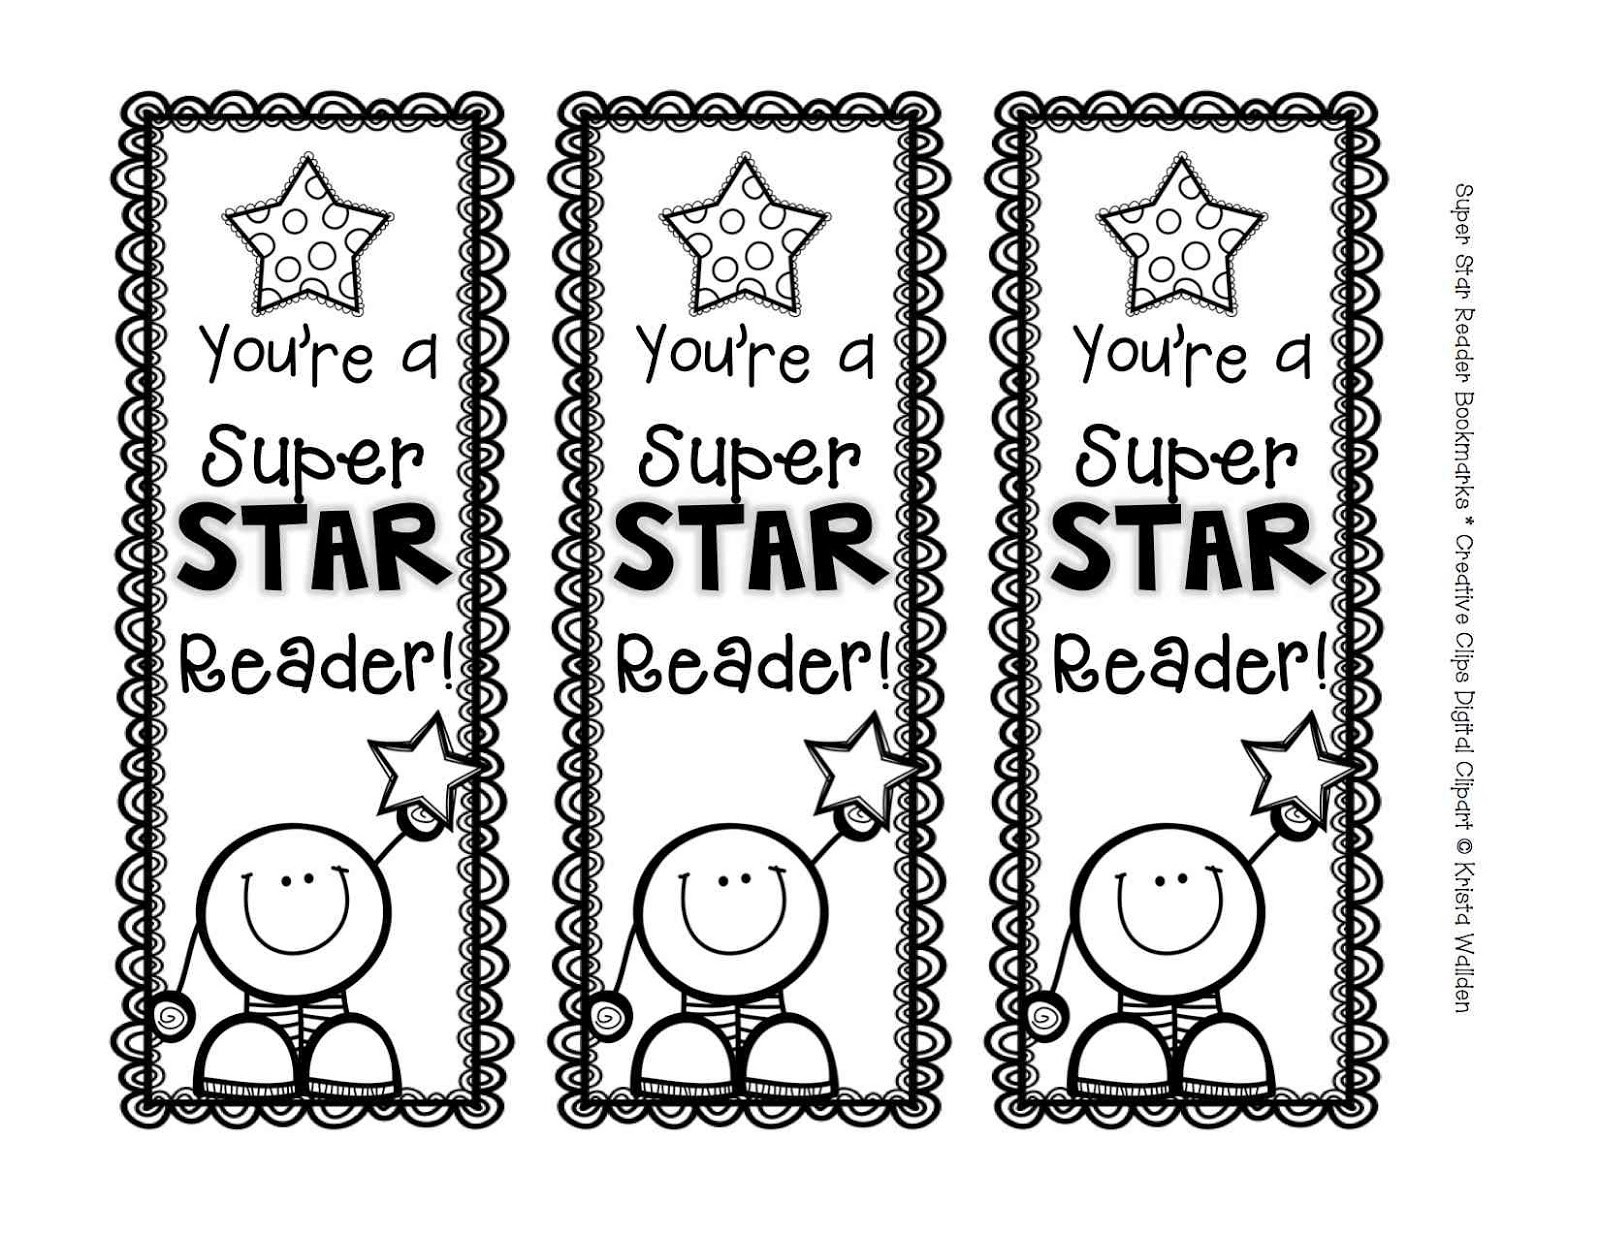 Free Printable Bookmark Templates To Color - Google Search intended for Cute Bookmarks To Print Black And White 27250